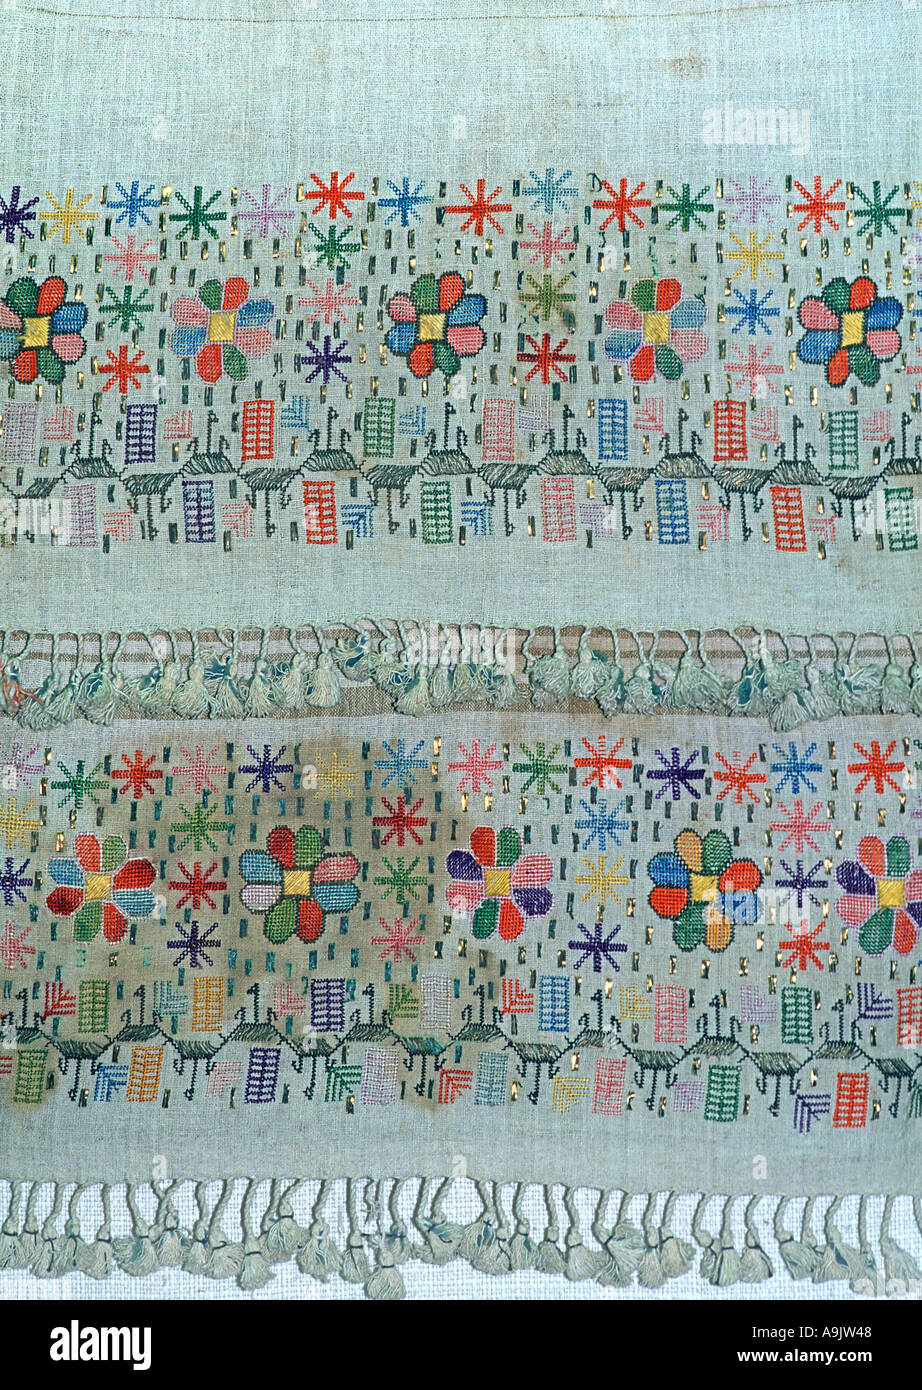 Ethnographic embroidery from the Antalya region Silk and cotton embroidery Antalya Turkey - Stock Image